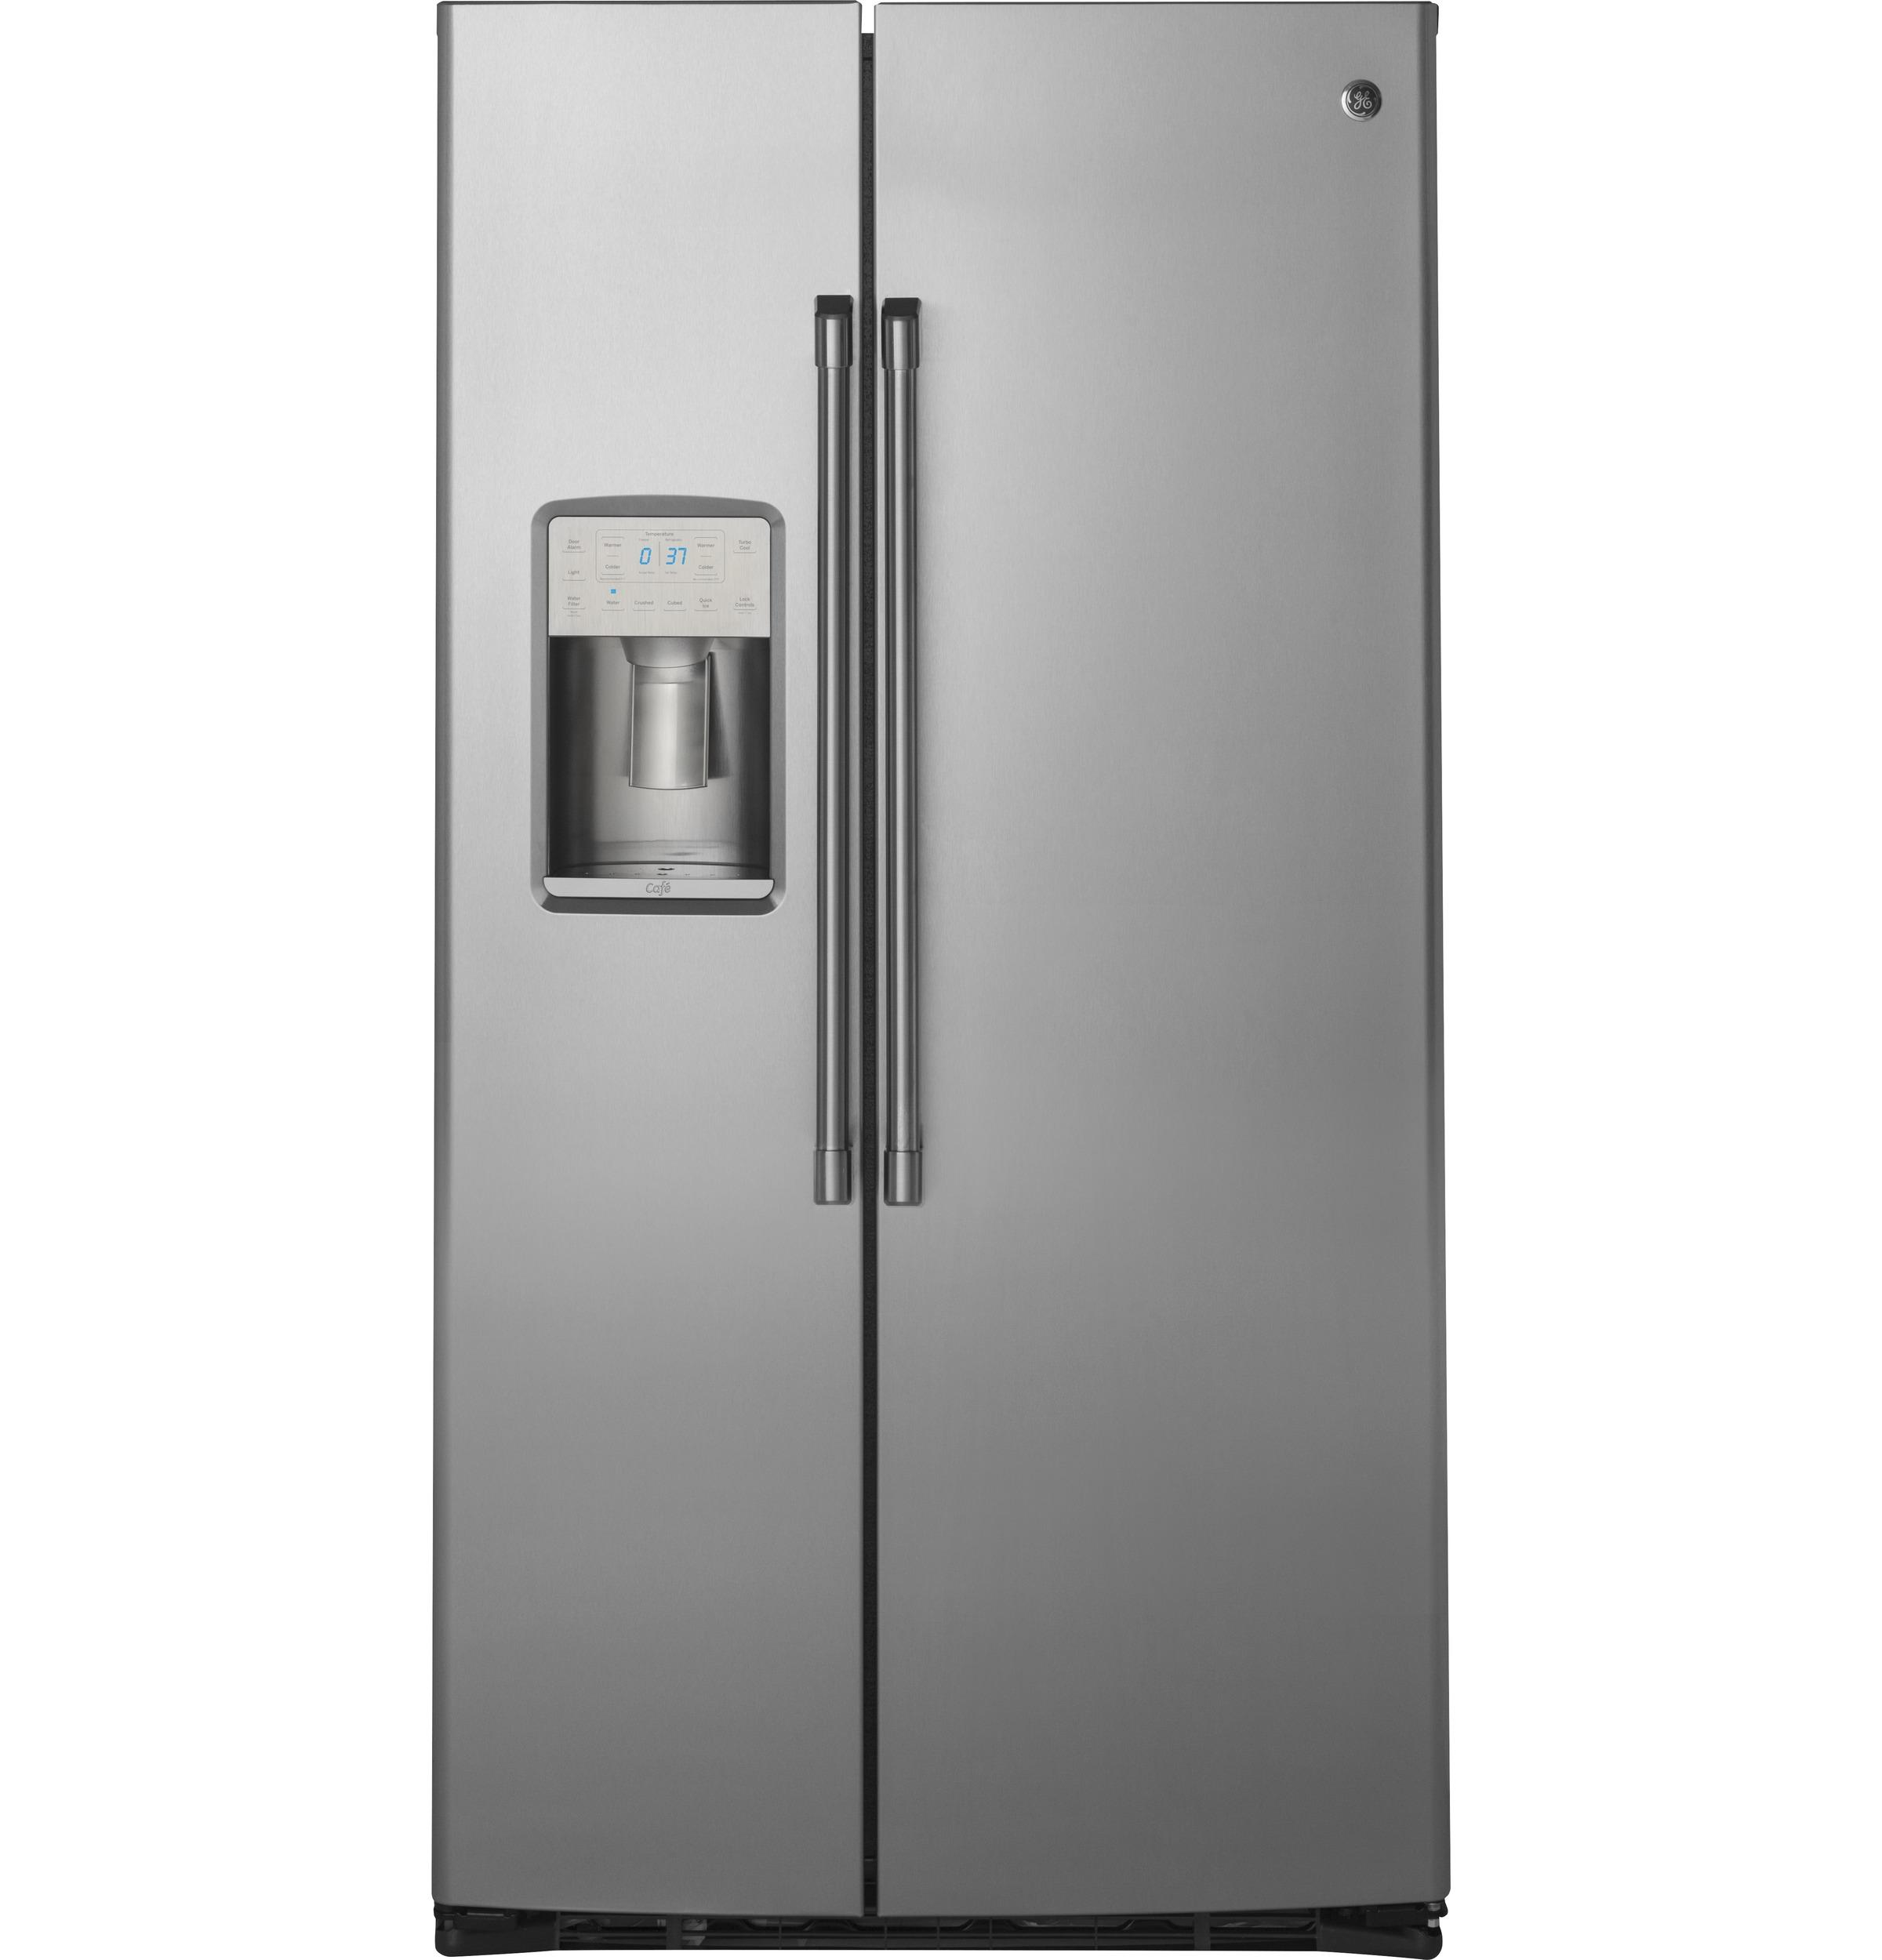 GE CafeSeries 21.9 Cu. Ft. Counter-Depth Side-By-Side Refrigerator